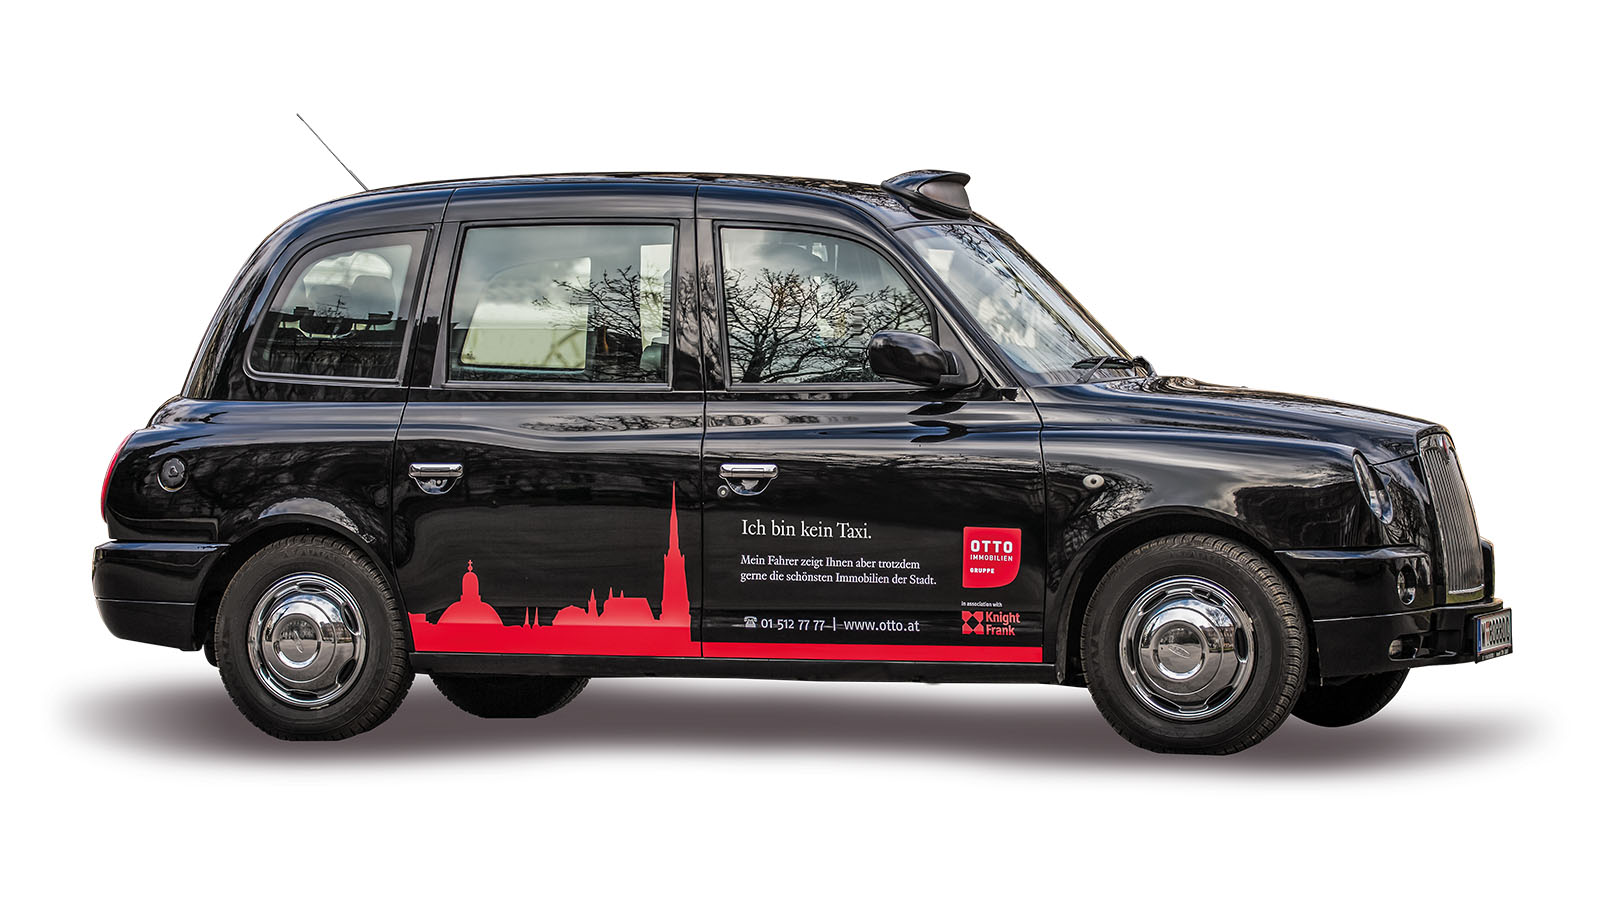 OTTO IMMOBILIEN GmbH Taxi